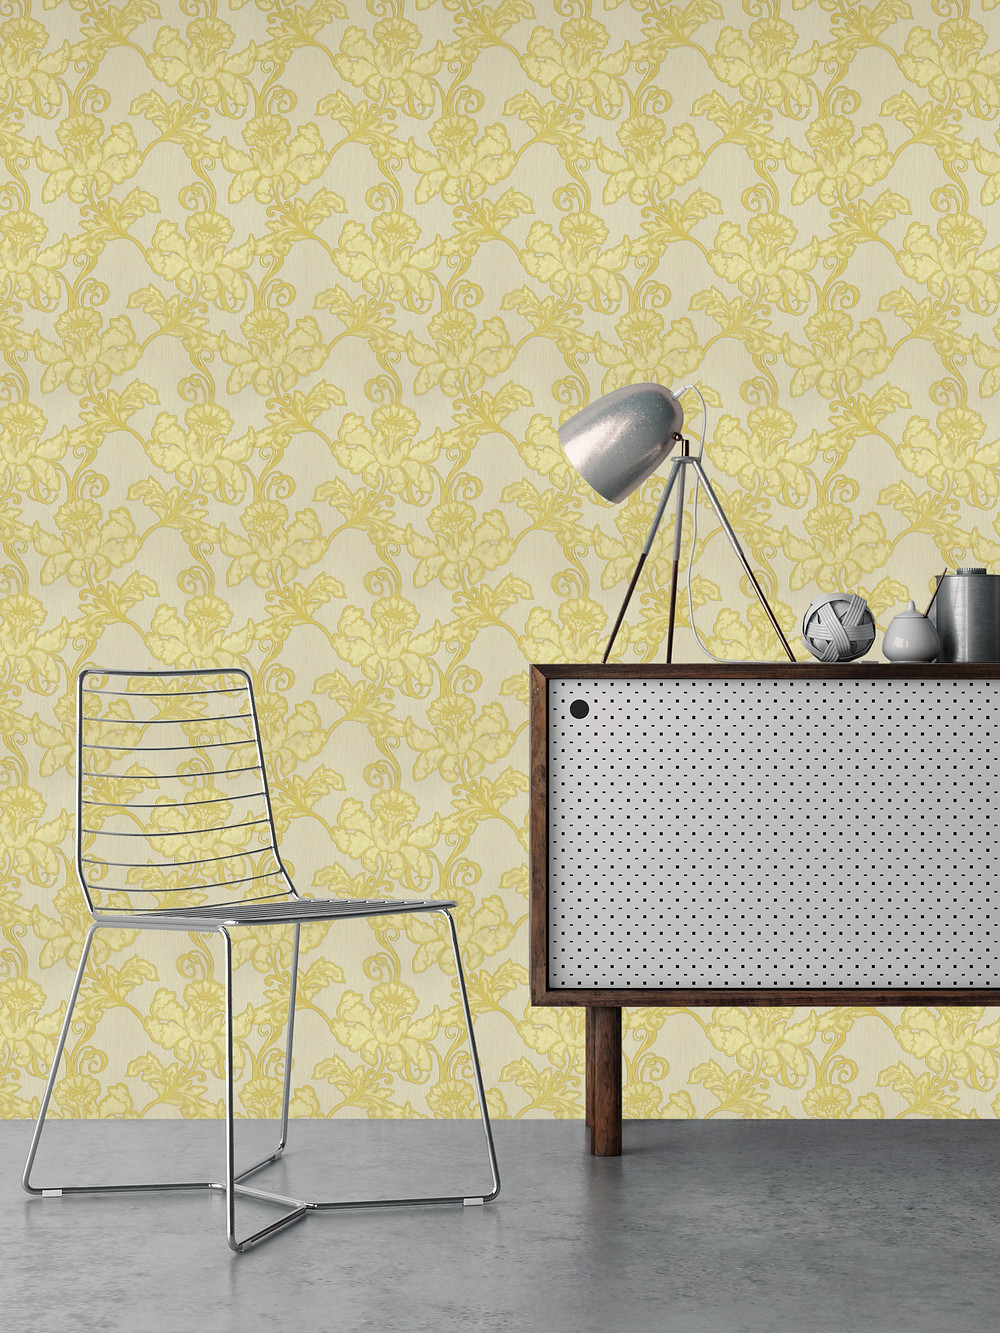 Wallpaper for walls from SkiptonWall Wallpaper supplier Dubai